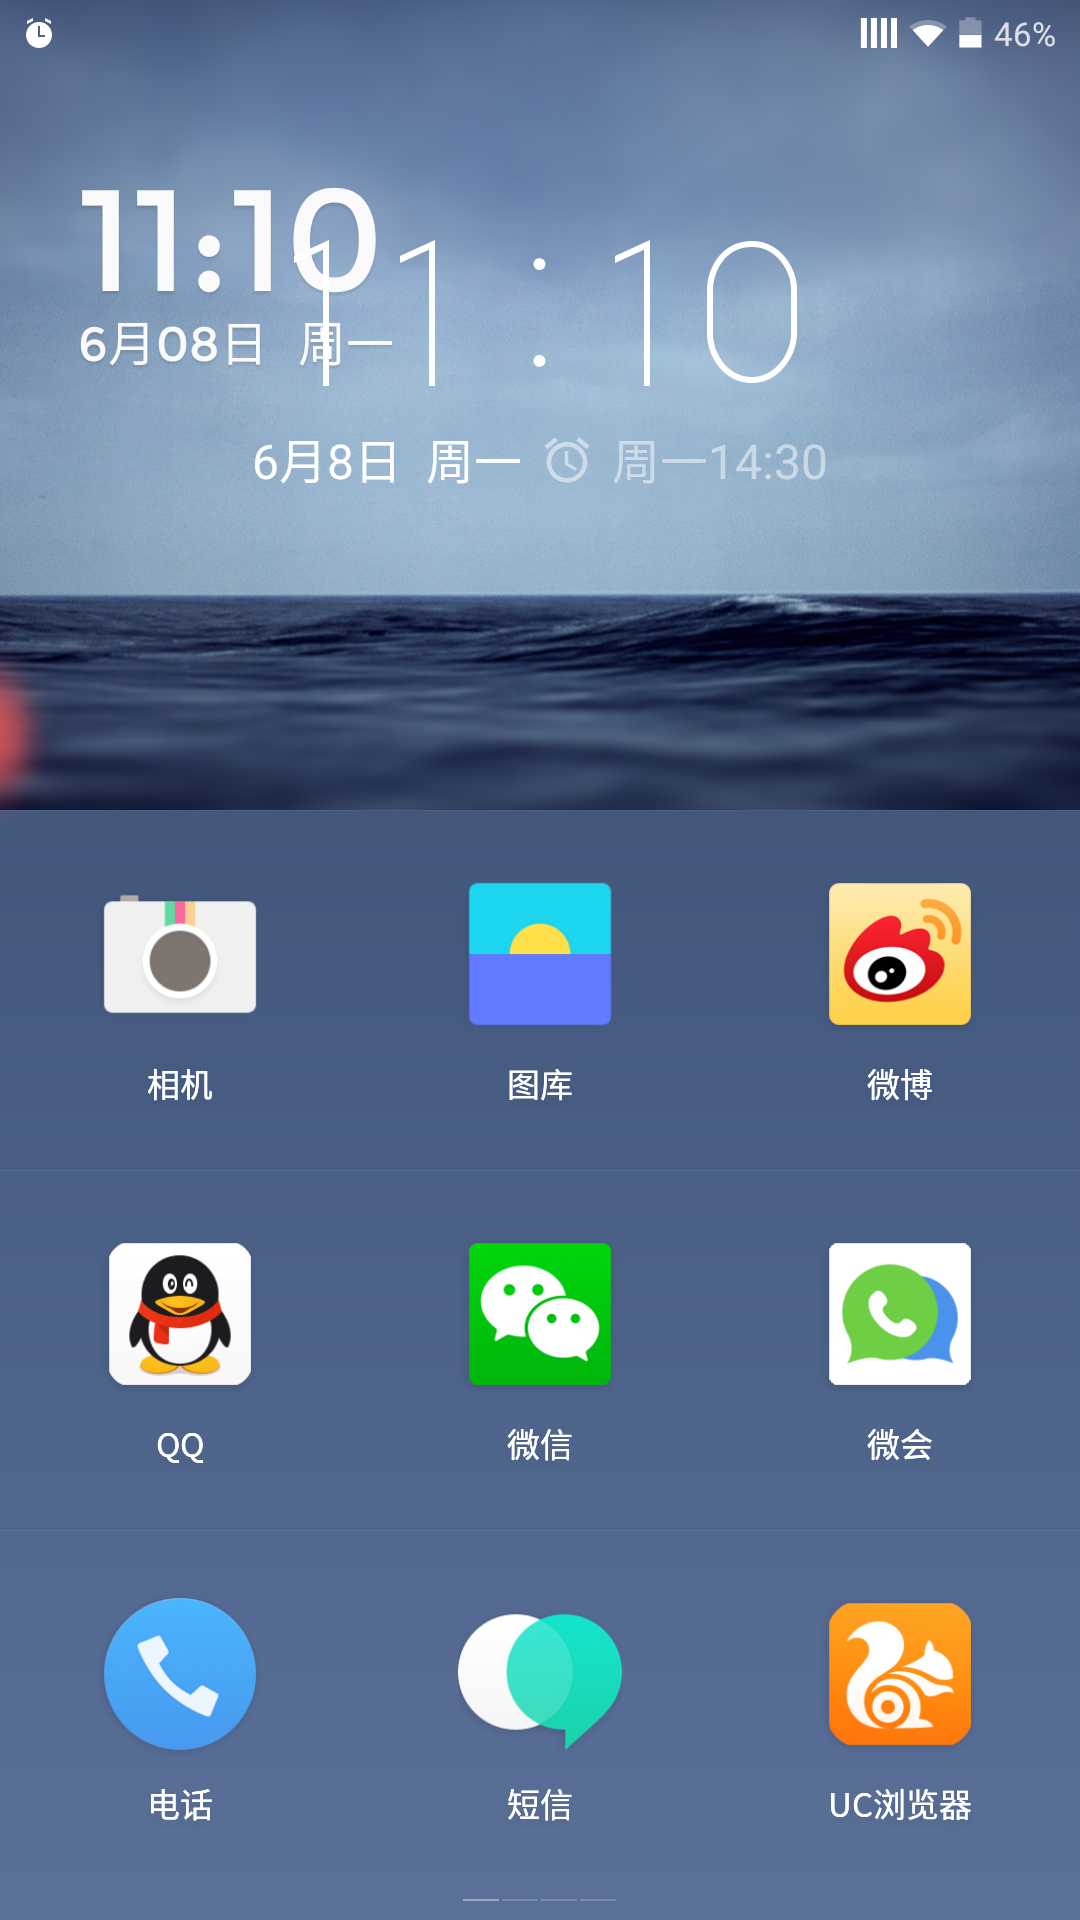 Screenshot_2015-06-08-11-10-48.png